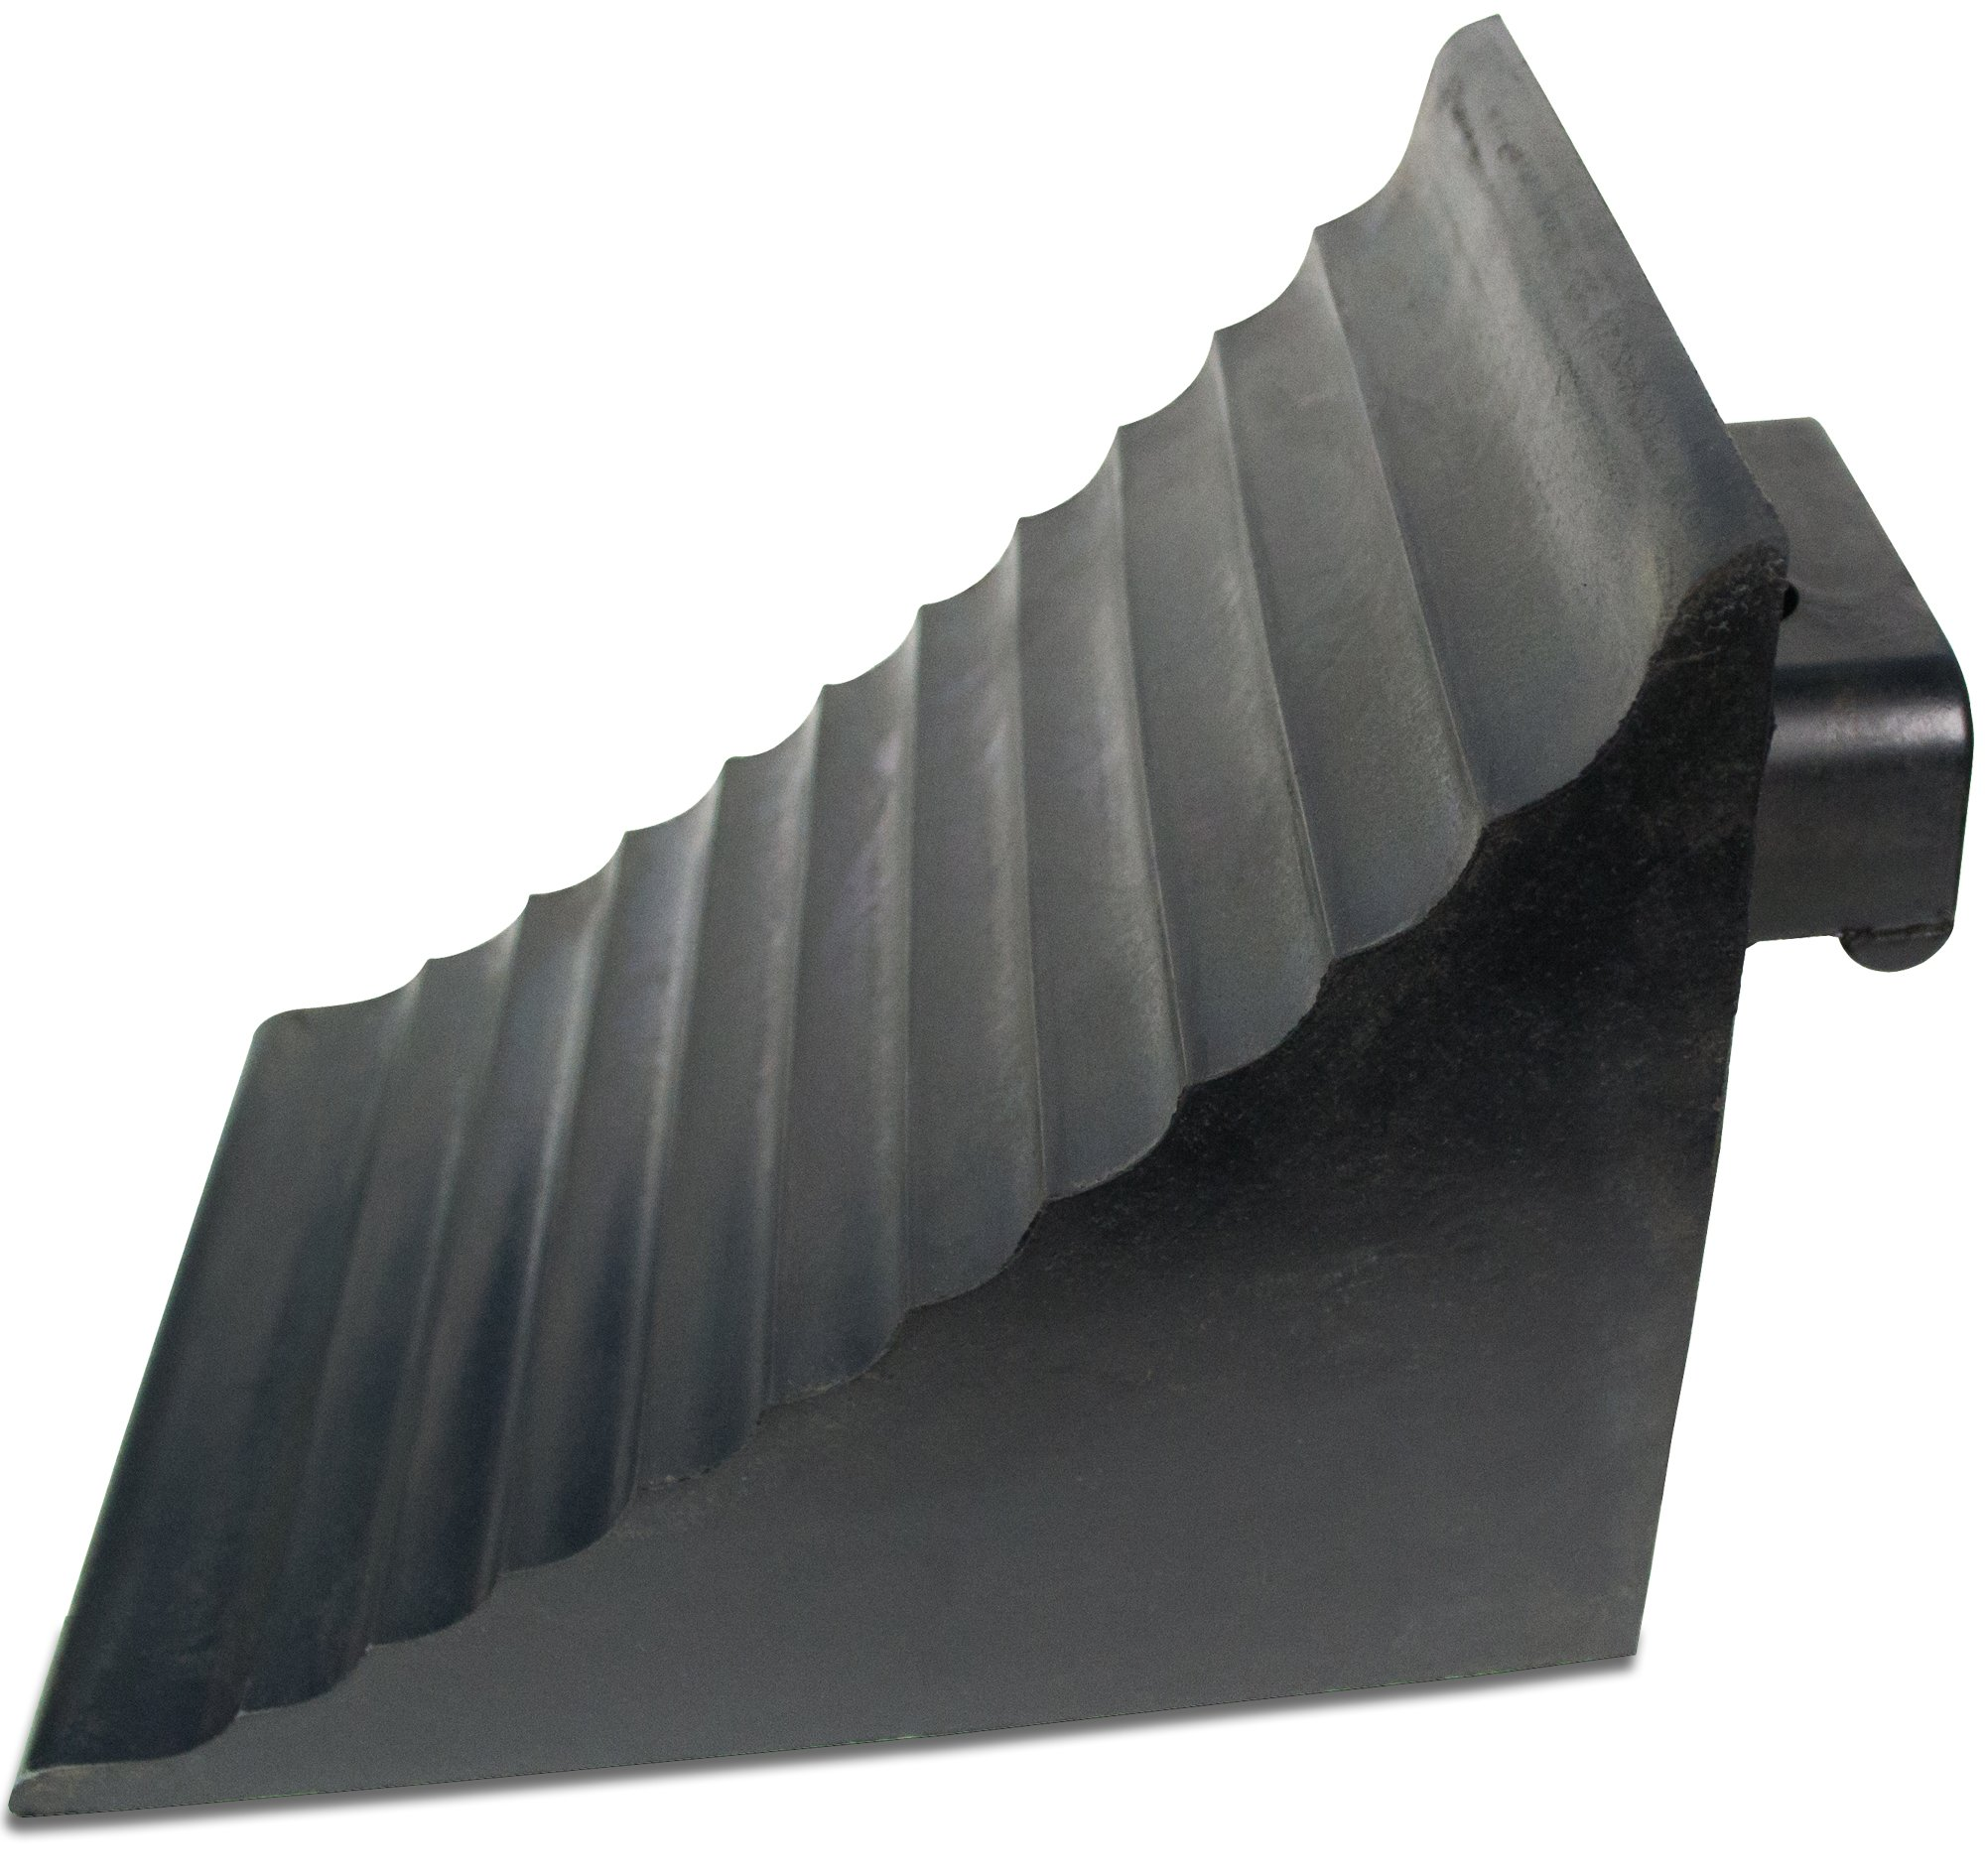 BUNKERWALL Extra Large Wheel Chock Block with Handle - Heavy Duty - Black Rubber 9.6'' x 7'' x 7.5'' by BUNKERWALL